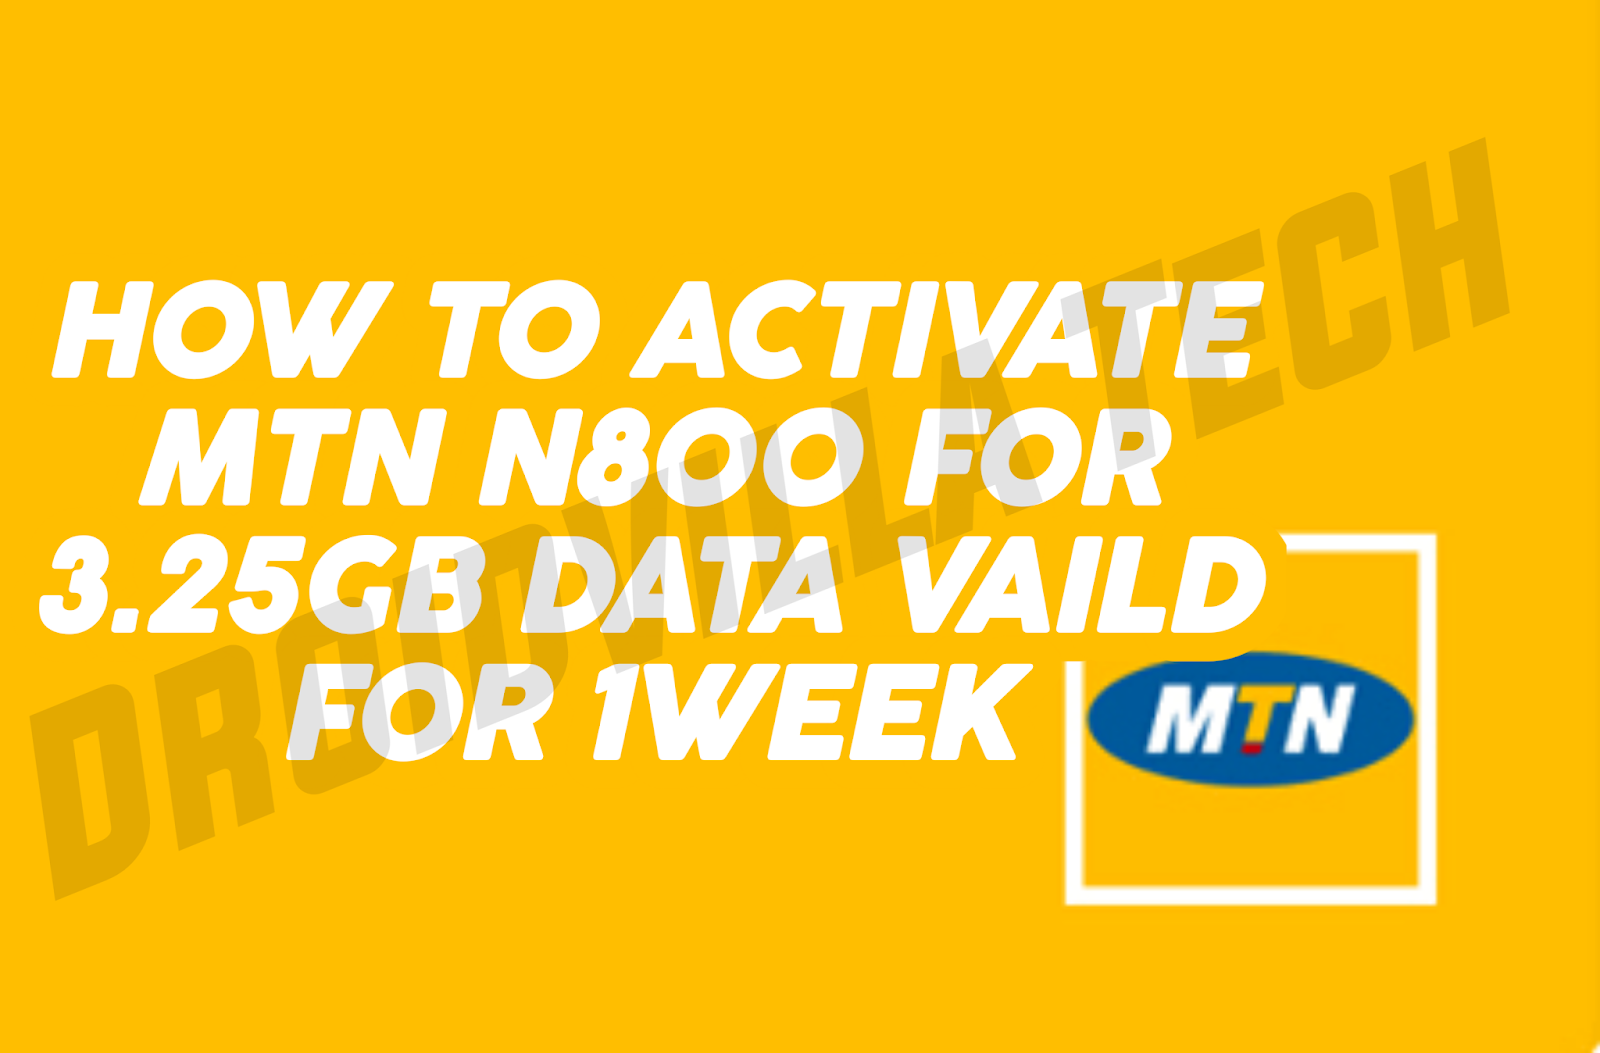 How to activate MTN N800 for 3.25GB data vaild for 1week